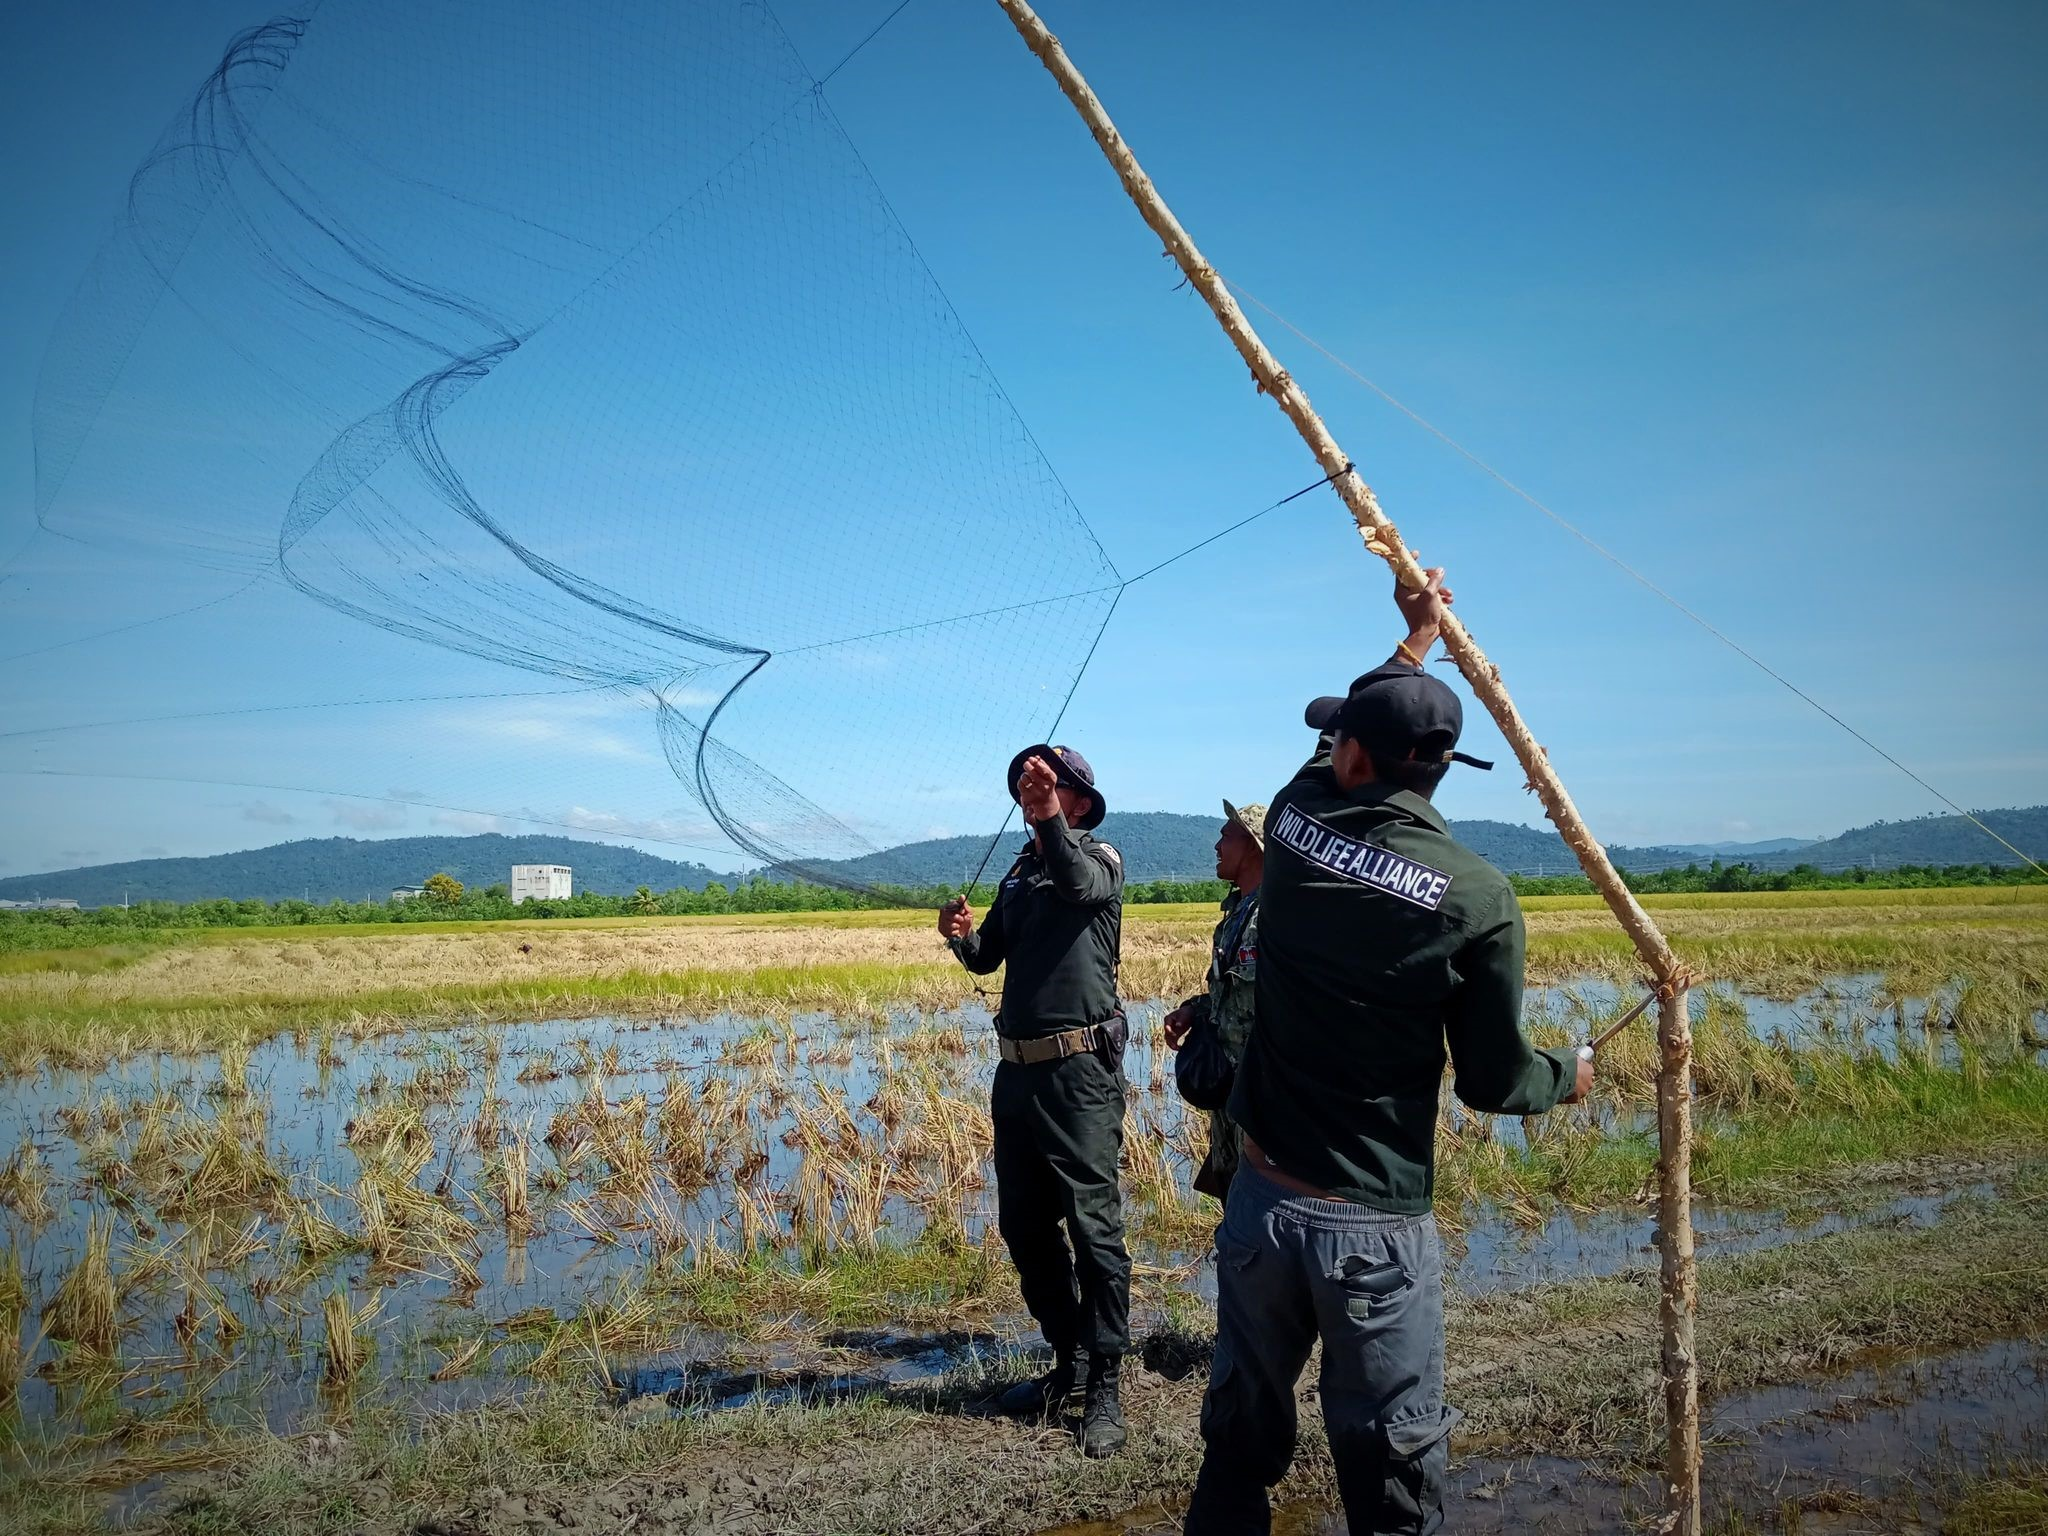 Bird netting leads to extermination